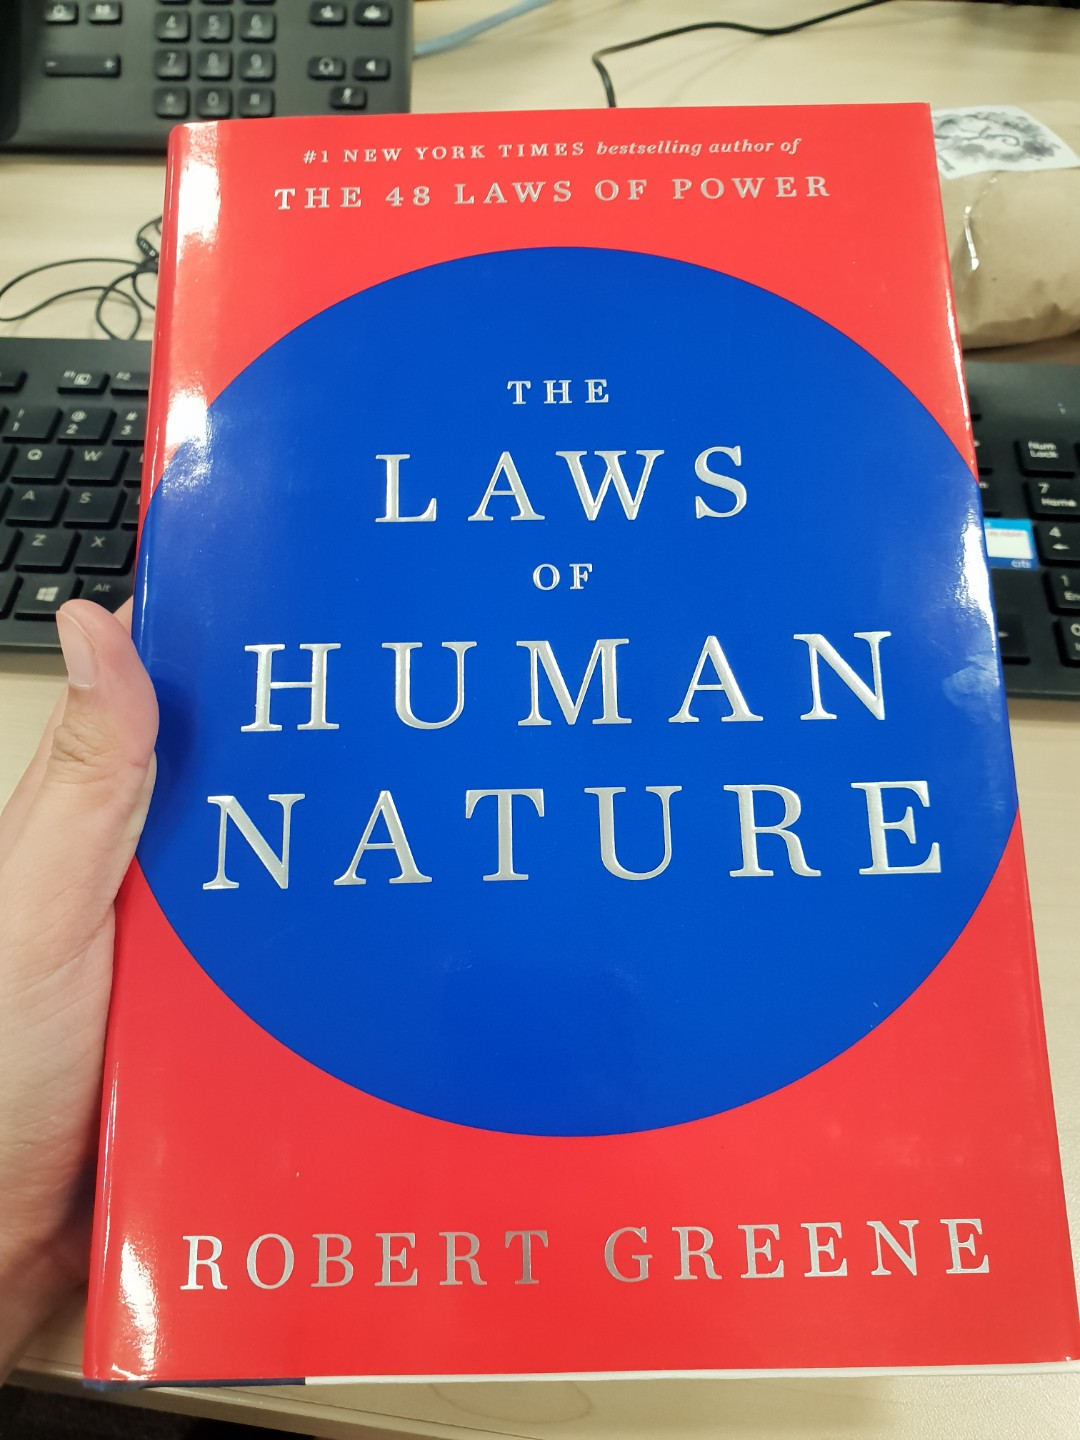 The Laws Of Human Nature : human, nature, Human, Nature, Robert, Greene,, Hobbies, Toys,, Books, Magazines,, Storybooks, Carousell